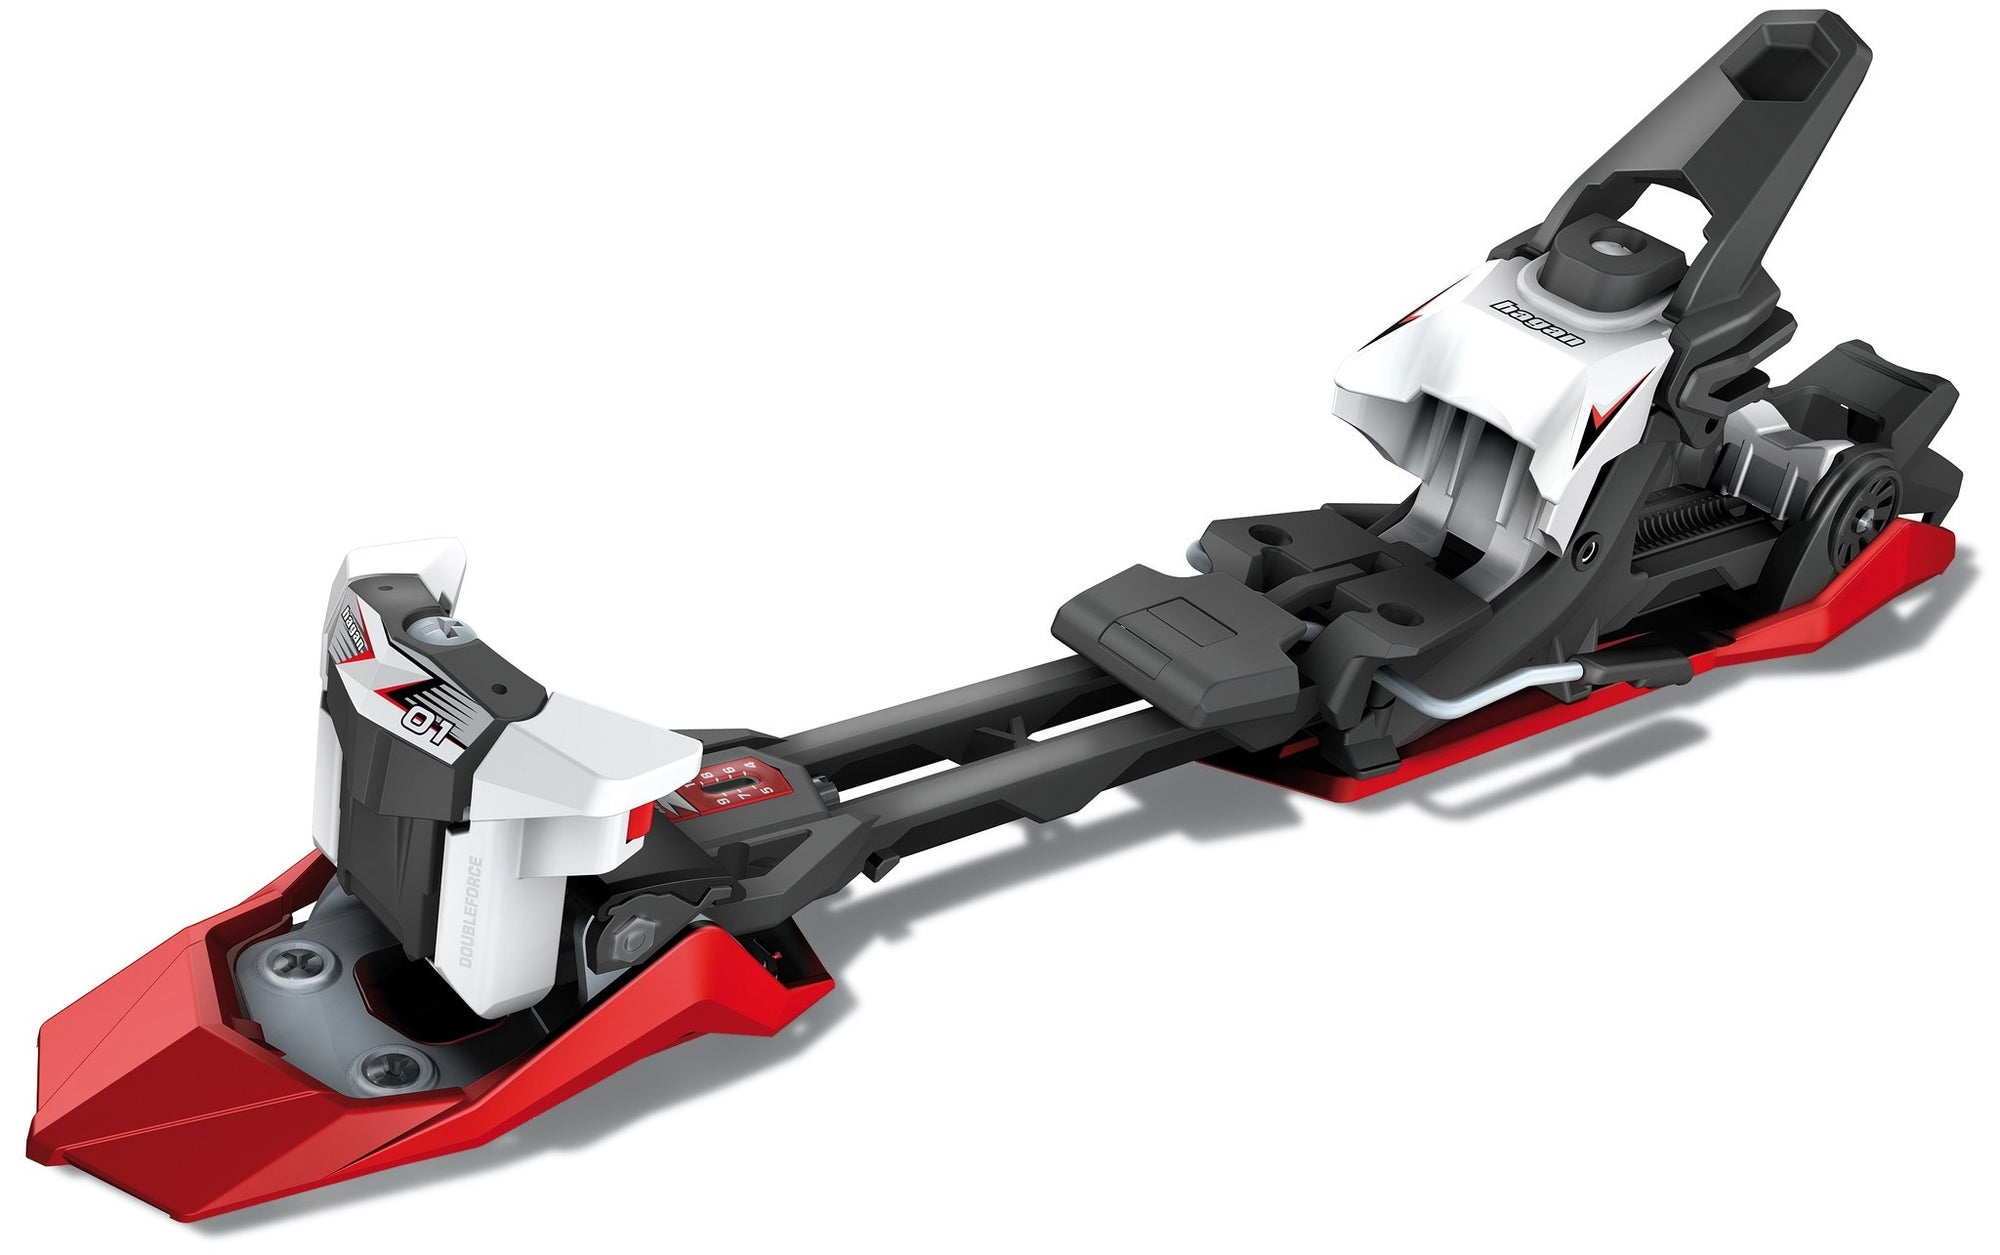 Z01 Alpine Touring Binding, Bindings - Hagan Ski Mountaineering